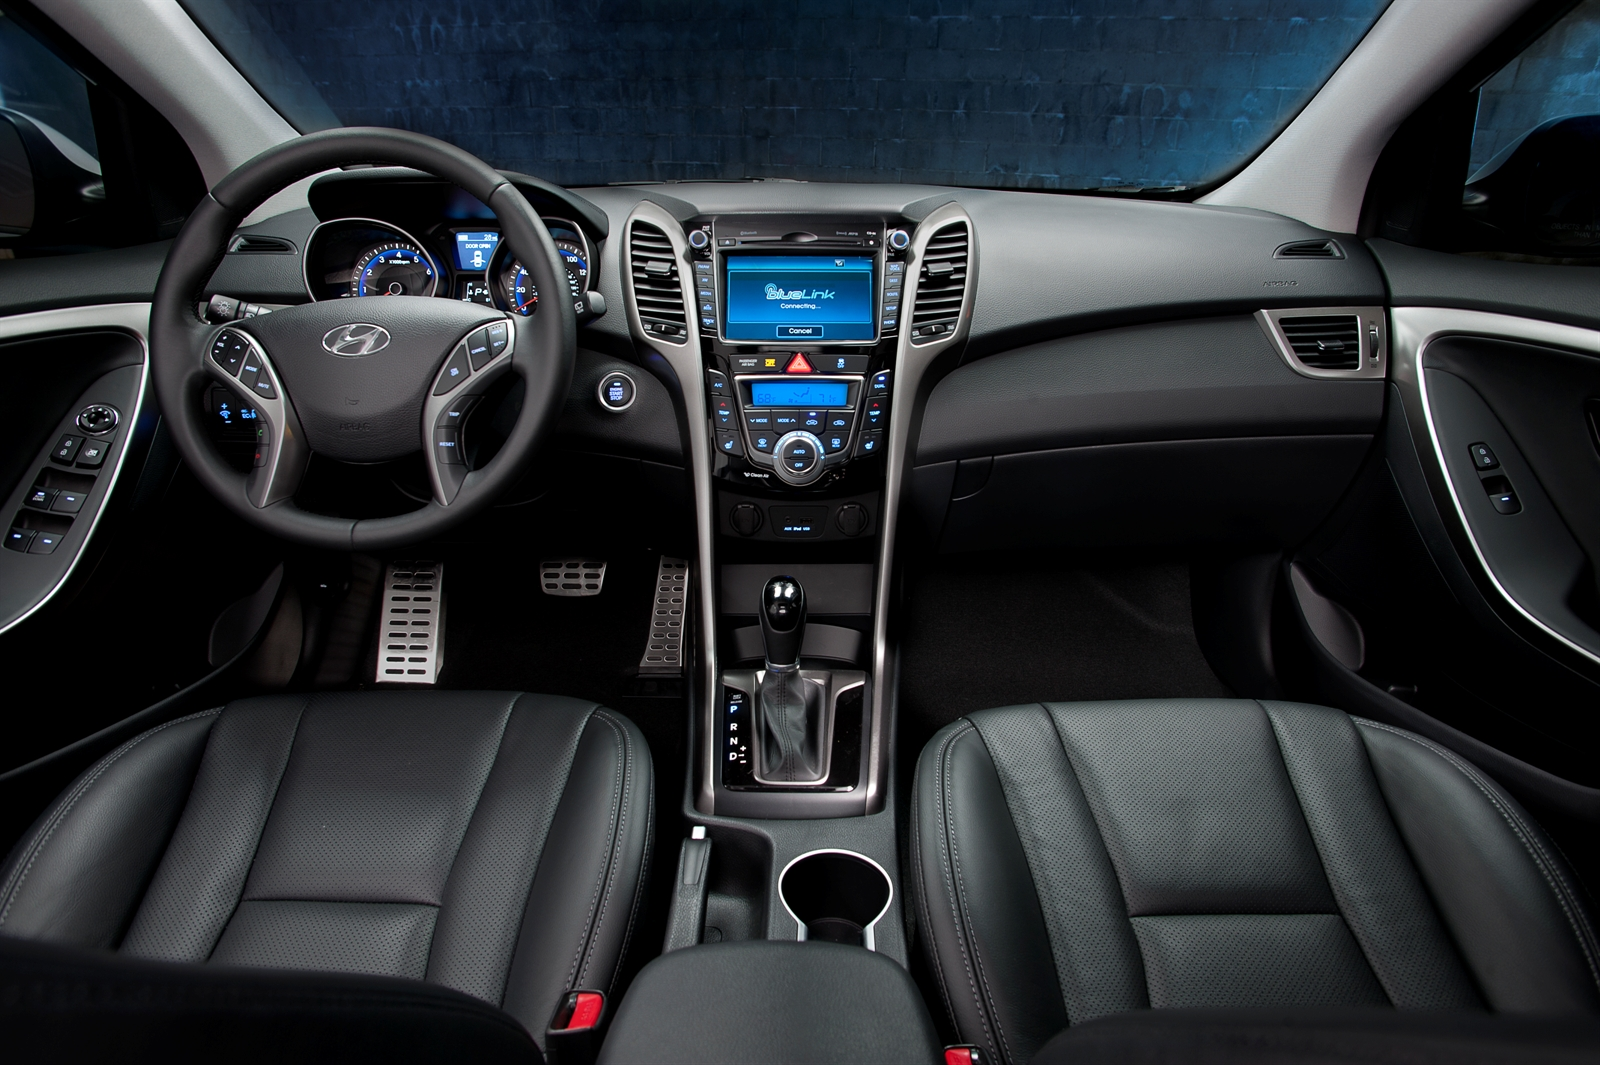 2015 hyundai sonata pricing options and specifications cleanmpg - Download